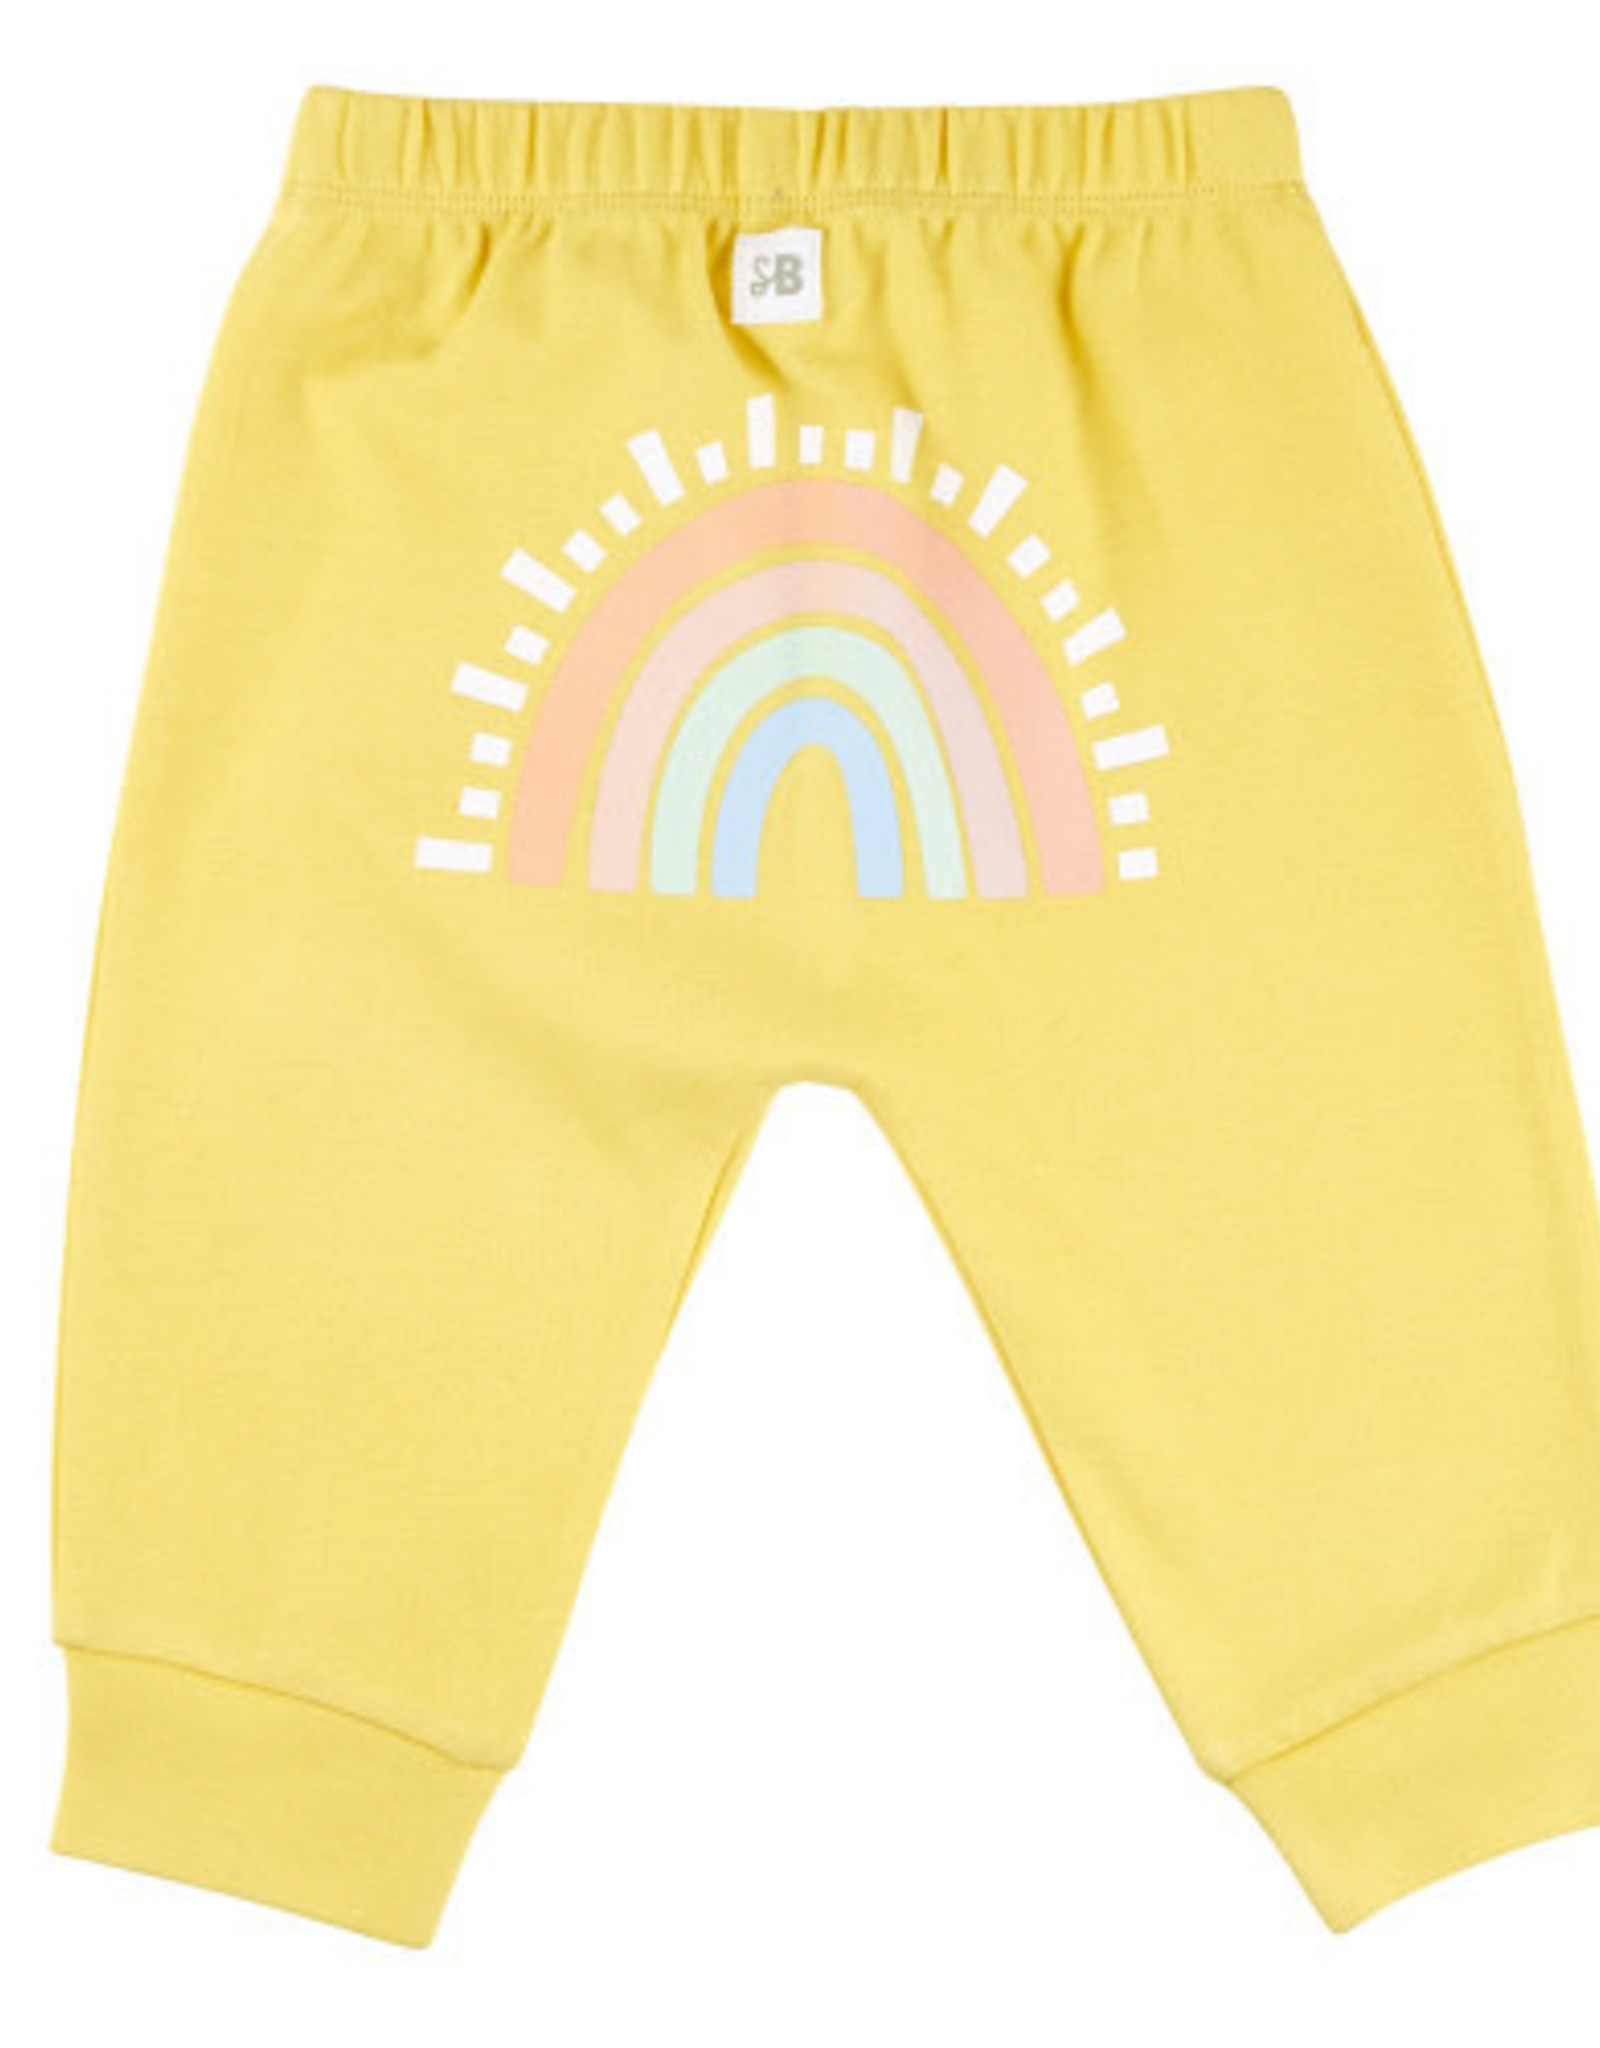 Creative Brands Baby Joggers 6-12 months